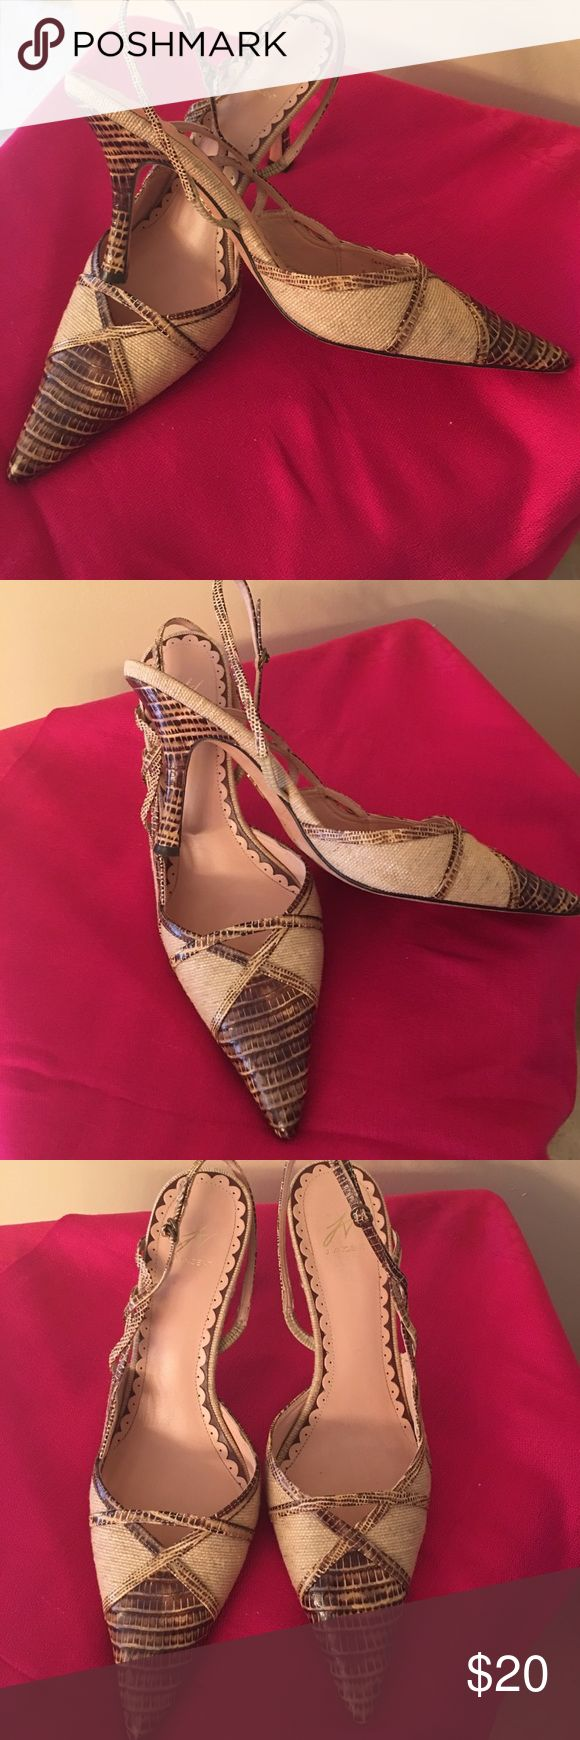 J Vincent cream/brown snake slingback pumps Very chic JVincent cream and brown snake slingback pumps.  Other than the very slight wear on the soles and very front tip facing the bottom, the shoes are in excellent used condition. See photos. Size 7.5 J VINCENT Shoes Heels